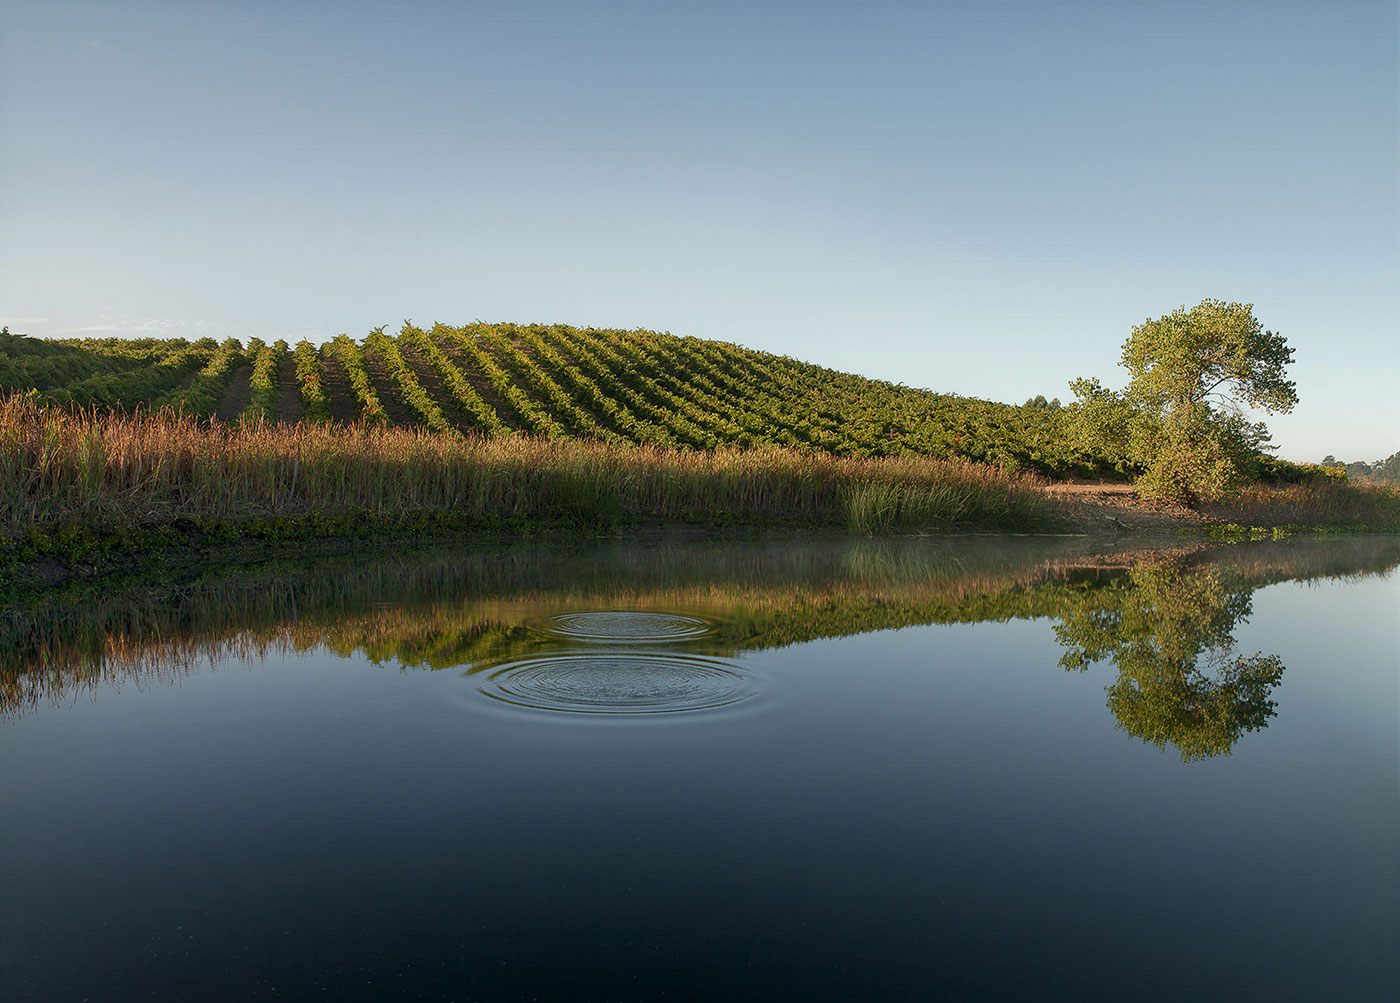 Frog's Leap - Morning, Truchard Vineyard, Carneros - August 2012